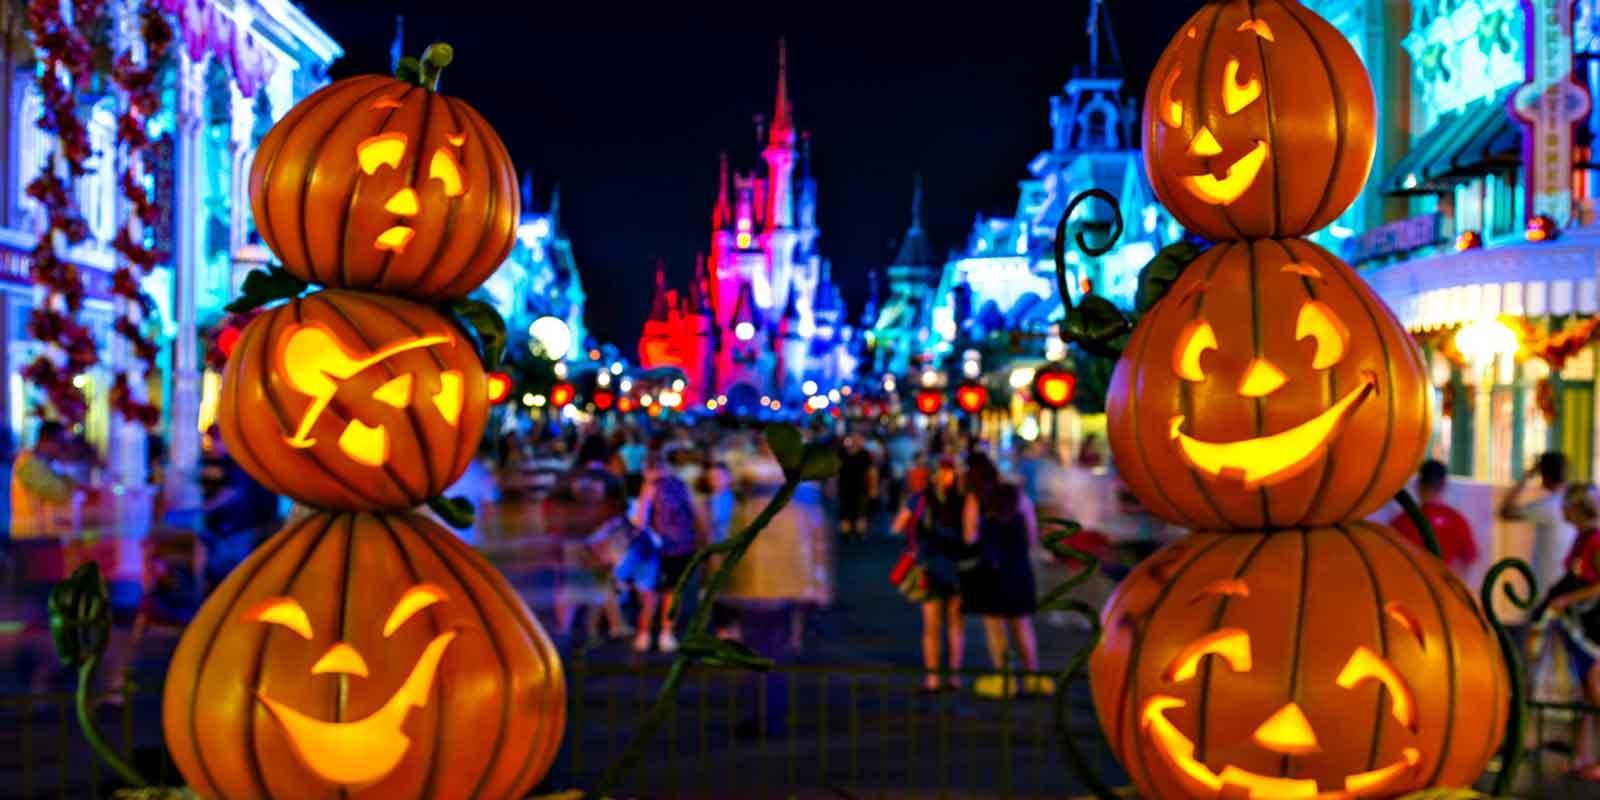 Closeup of 2 vertical stacks of pumpkins framing Cinderella's castle at Magic Kingdom.